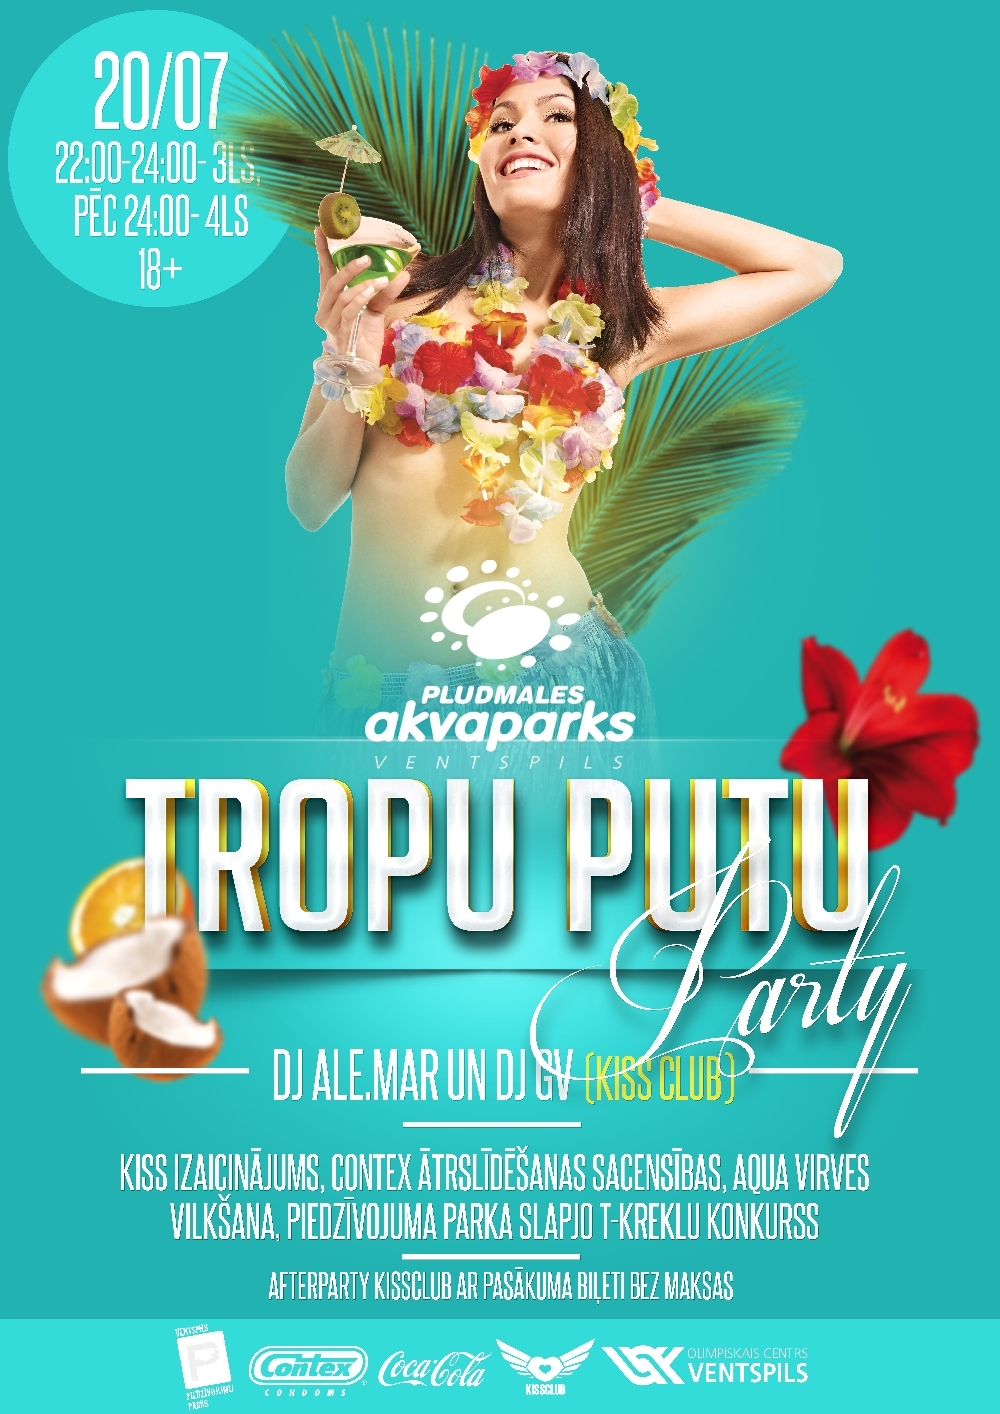 Seaside Waterpark to throw Tropical Foam Party - Ventspils.lv